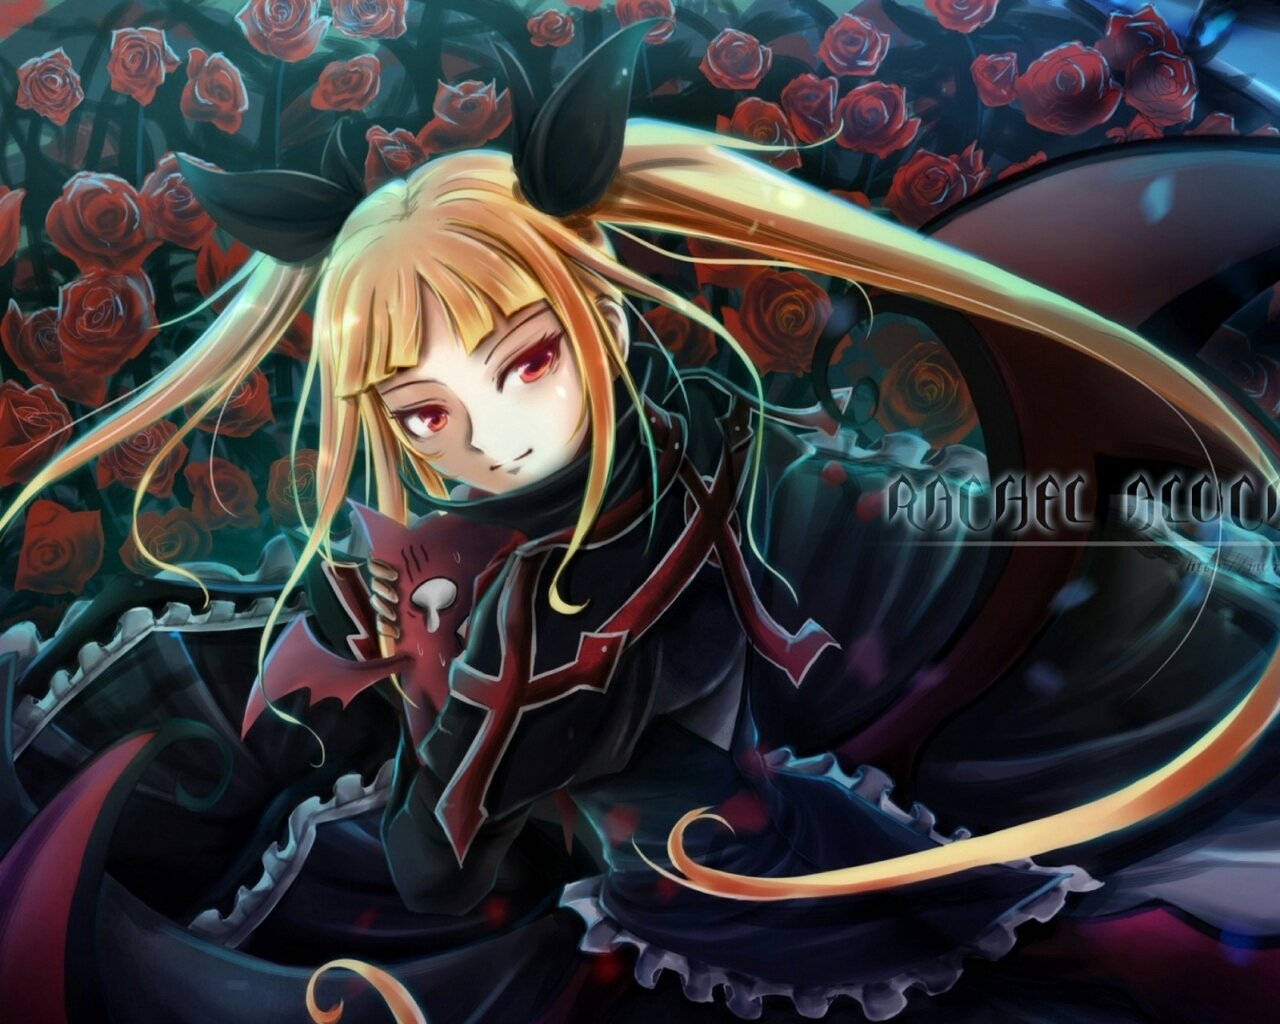 Download hd 1280x1024 Blazblue PC background ID:75059 for free